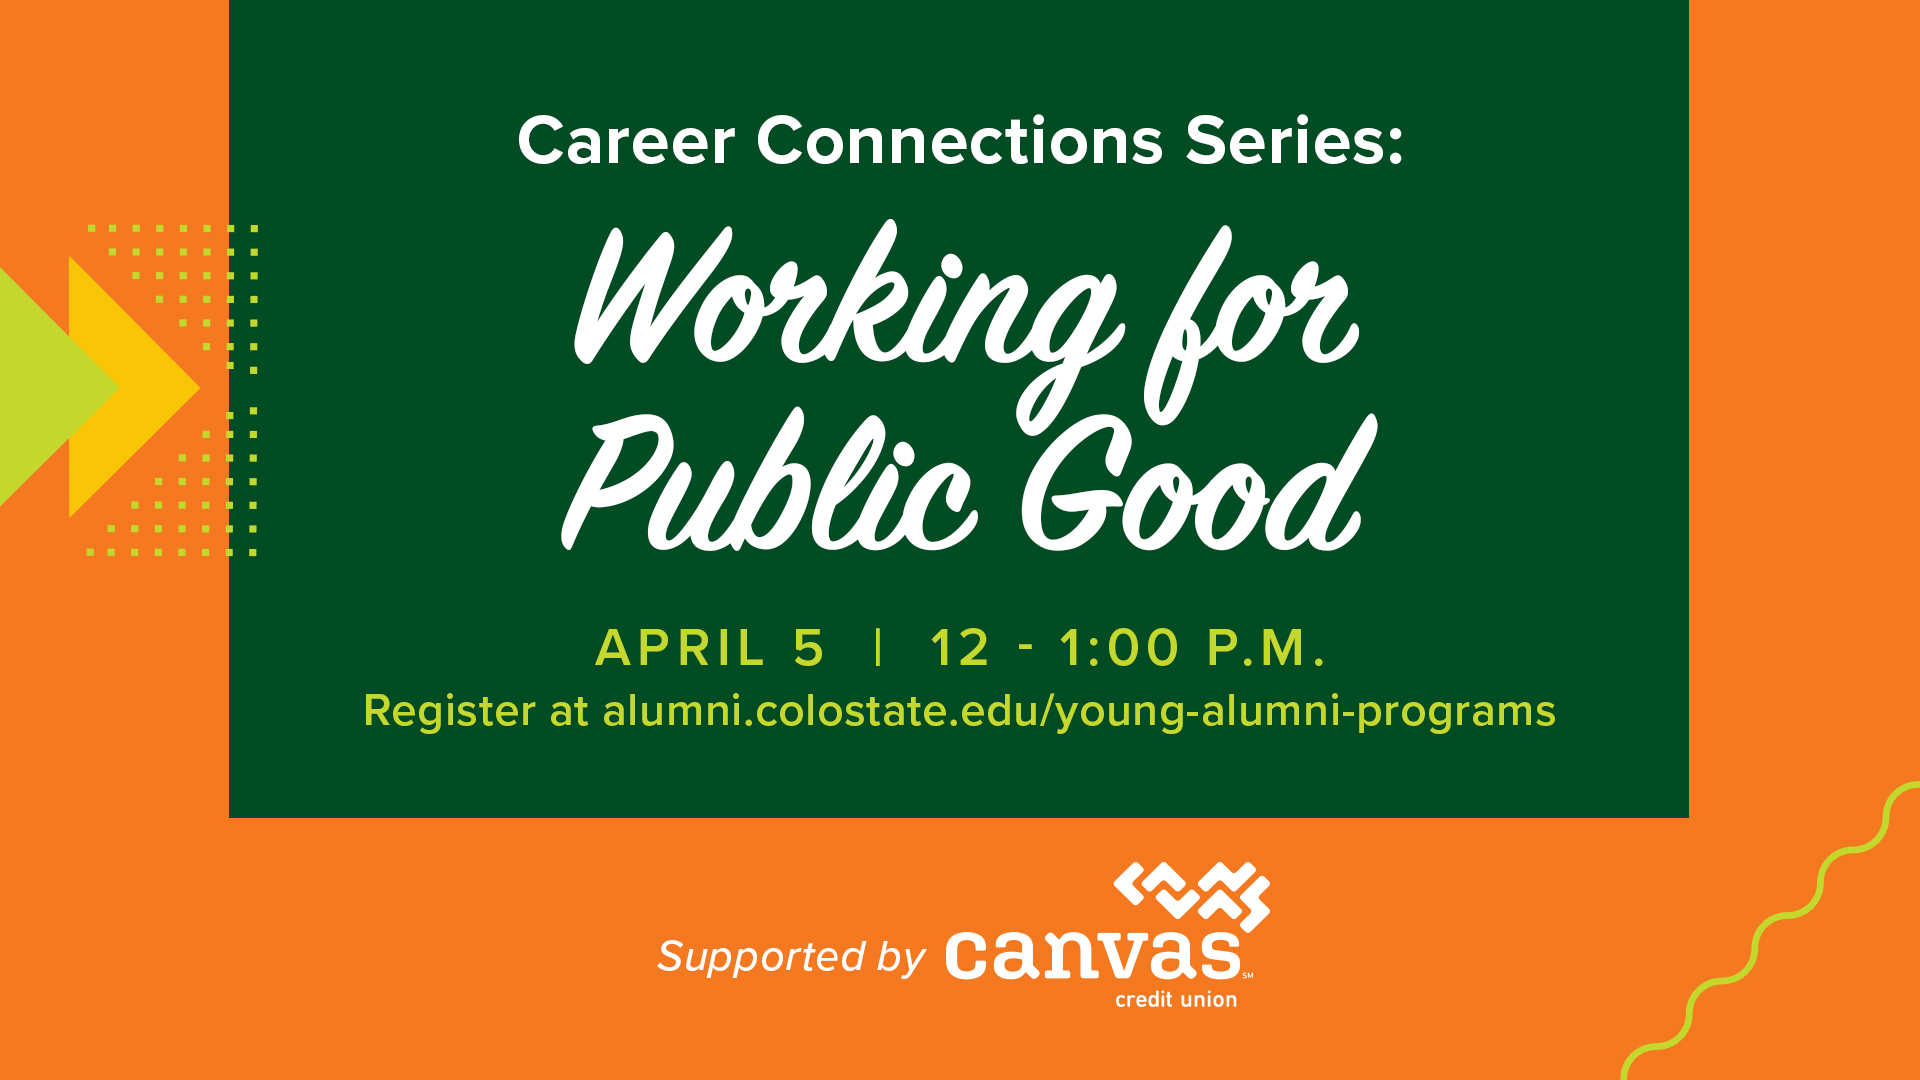 Image for Career Connections Series: Work for the Public Good webinar